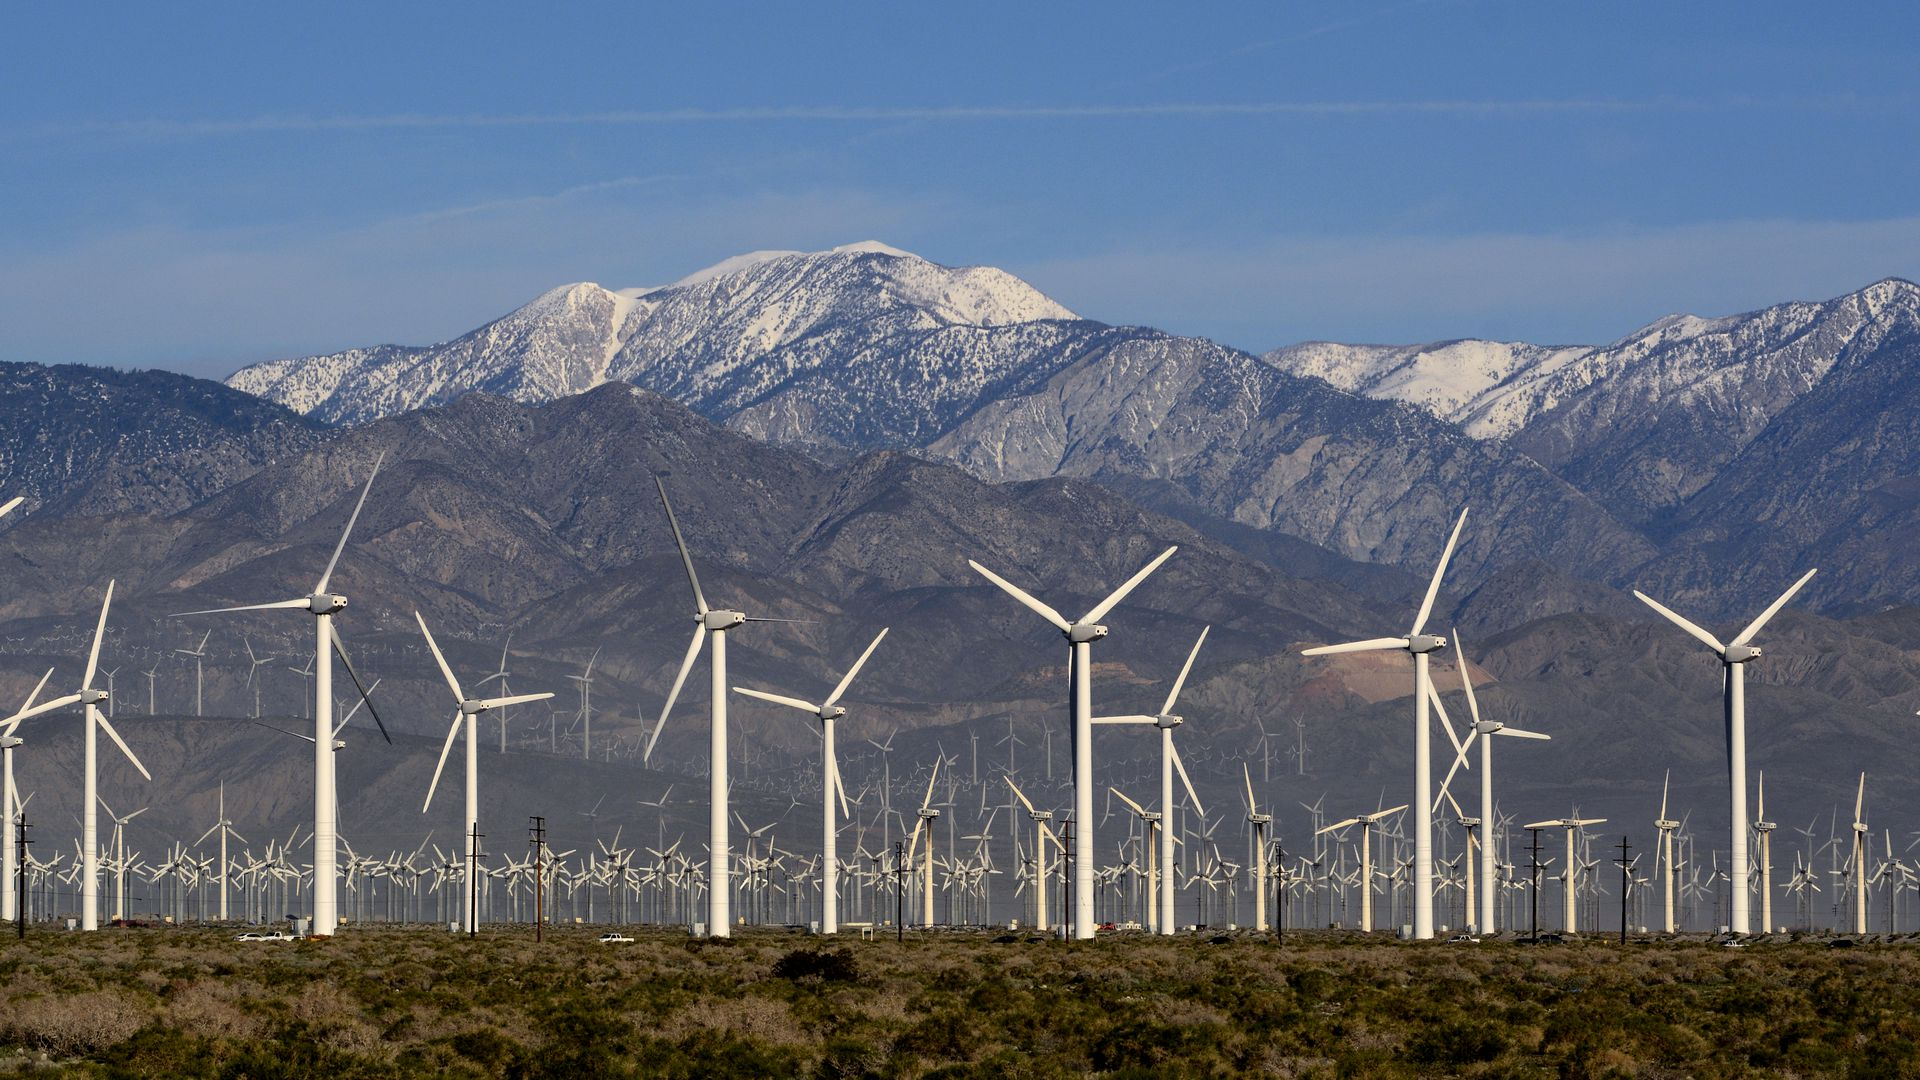 Renewable energy is on the rise, but it still only made up 17.6% of U.S. generation in 2018